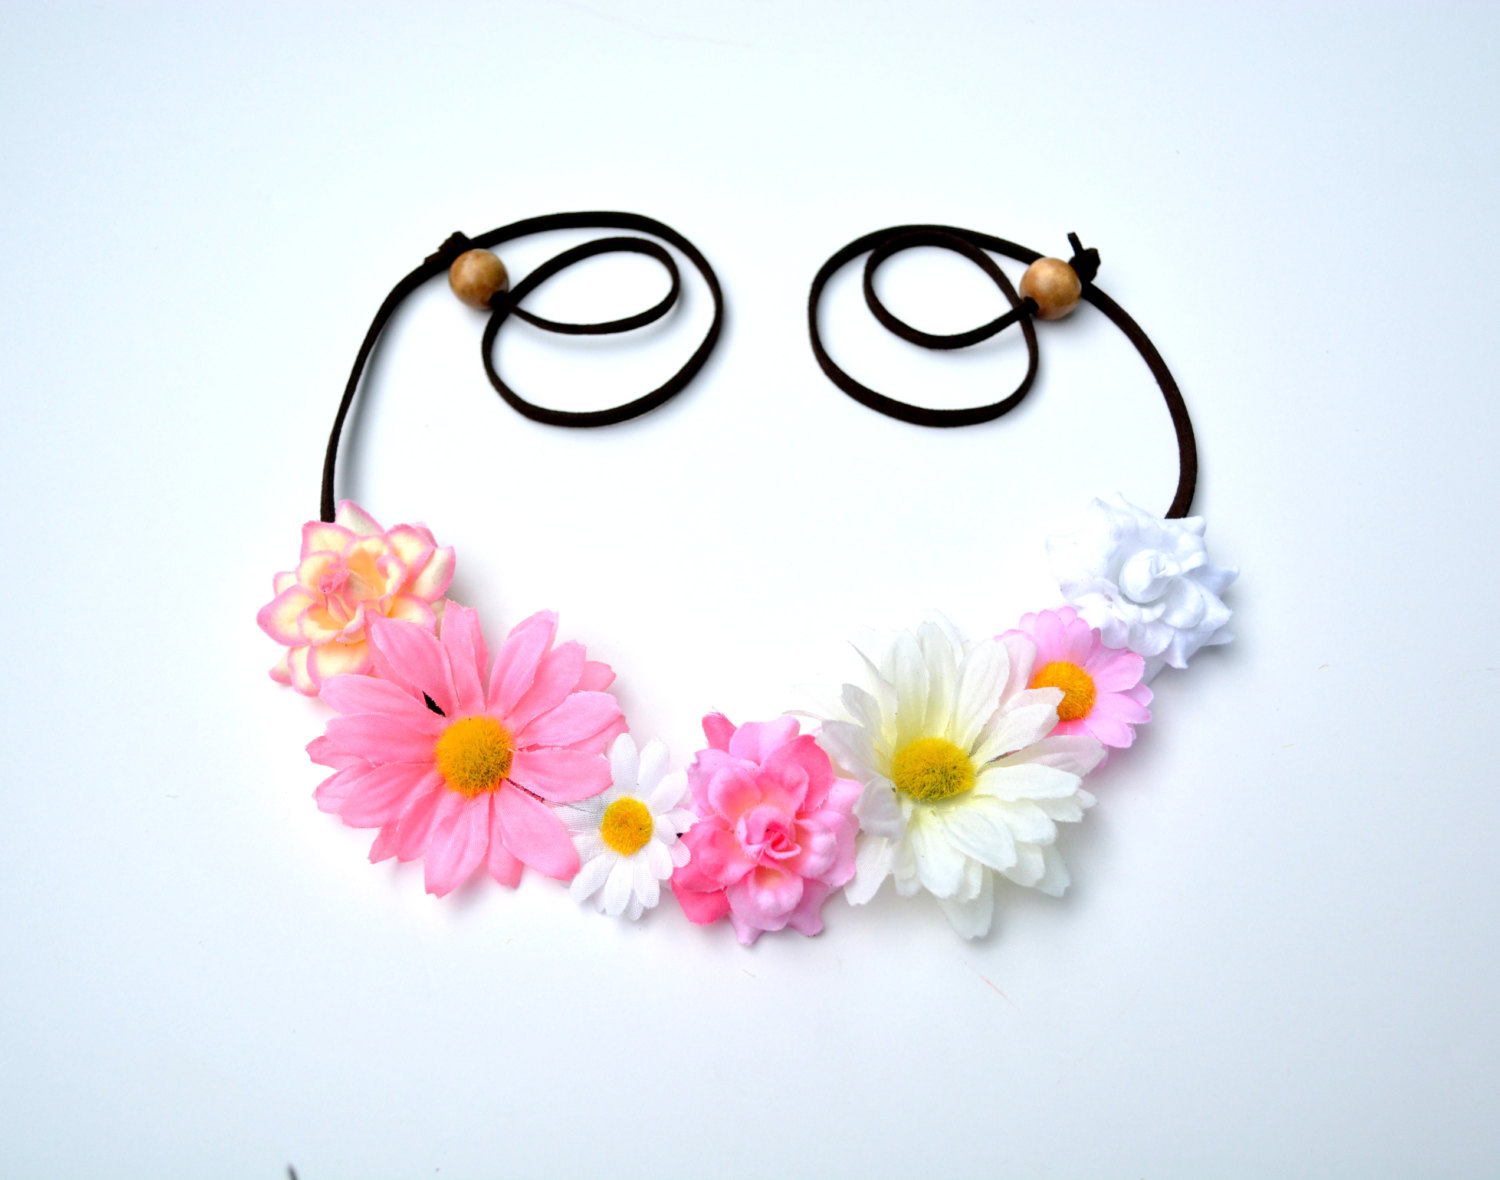 flower headband tumblr girl - photo #41